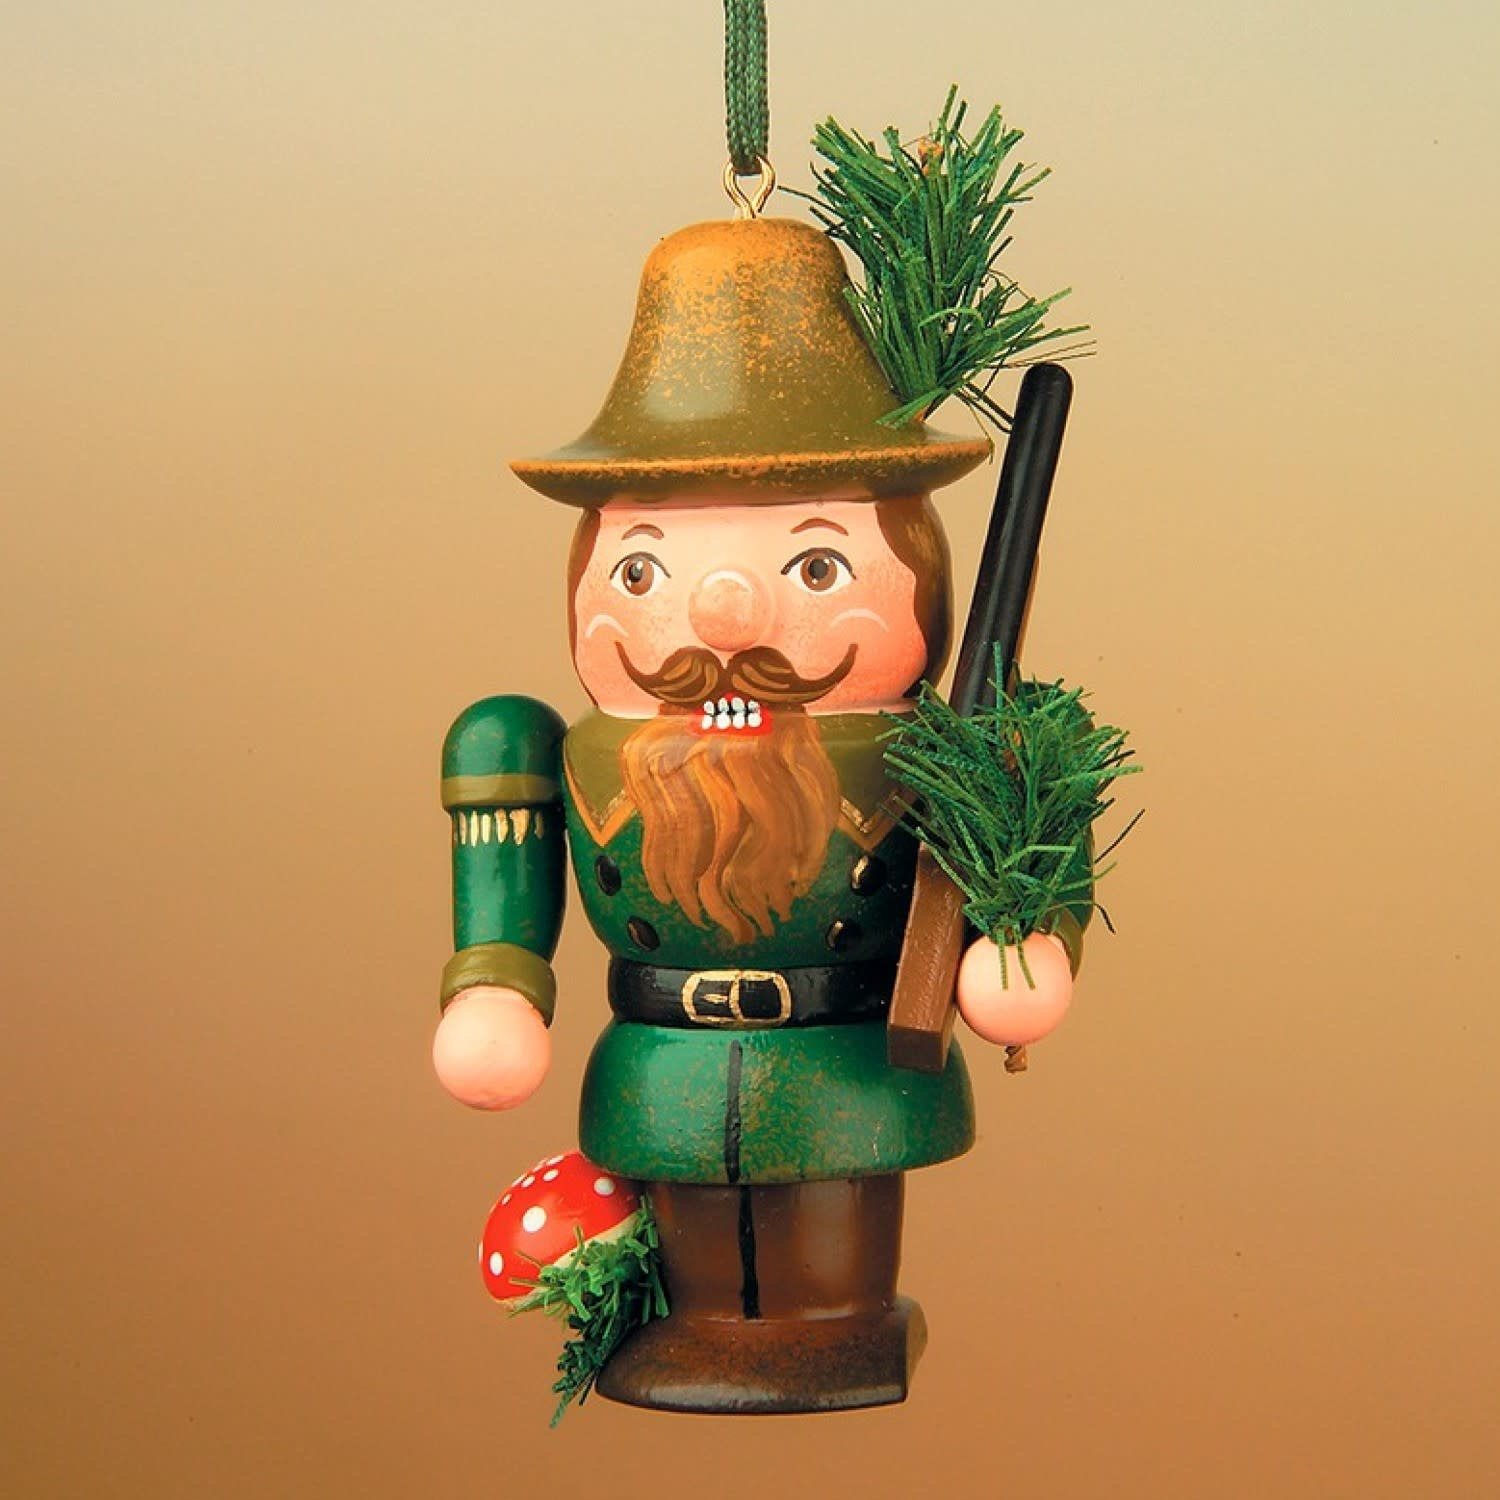 130h0006 Nutcracker Forester  - 2.75 inches high